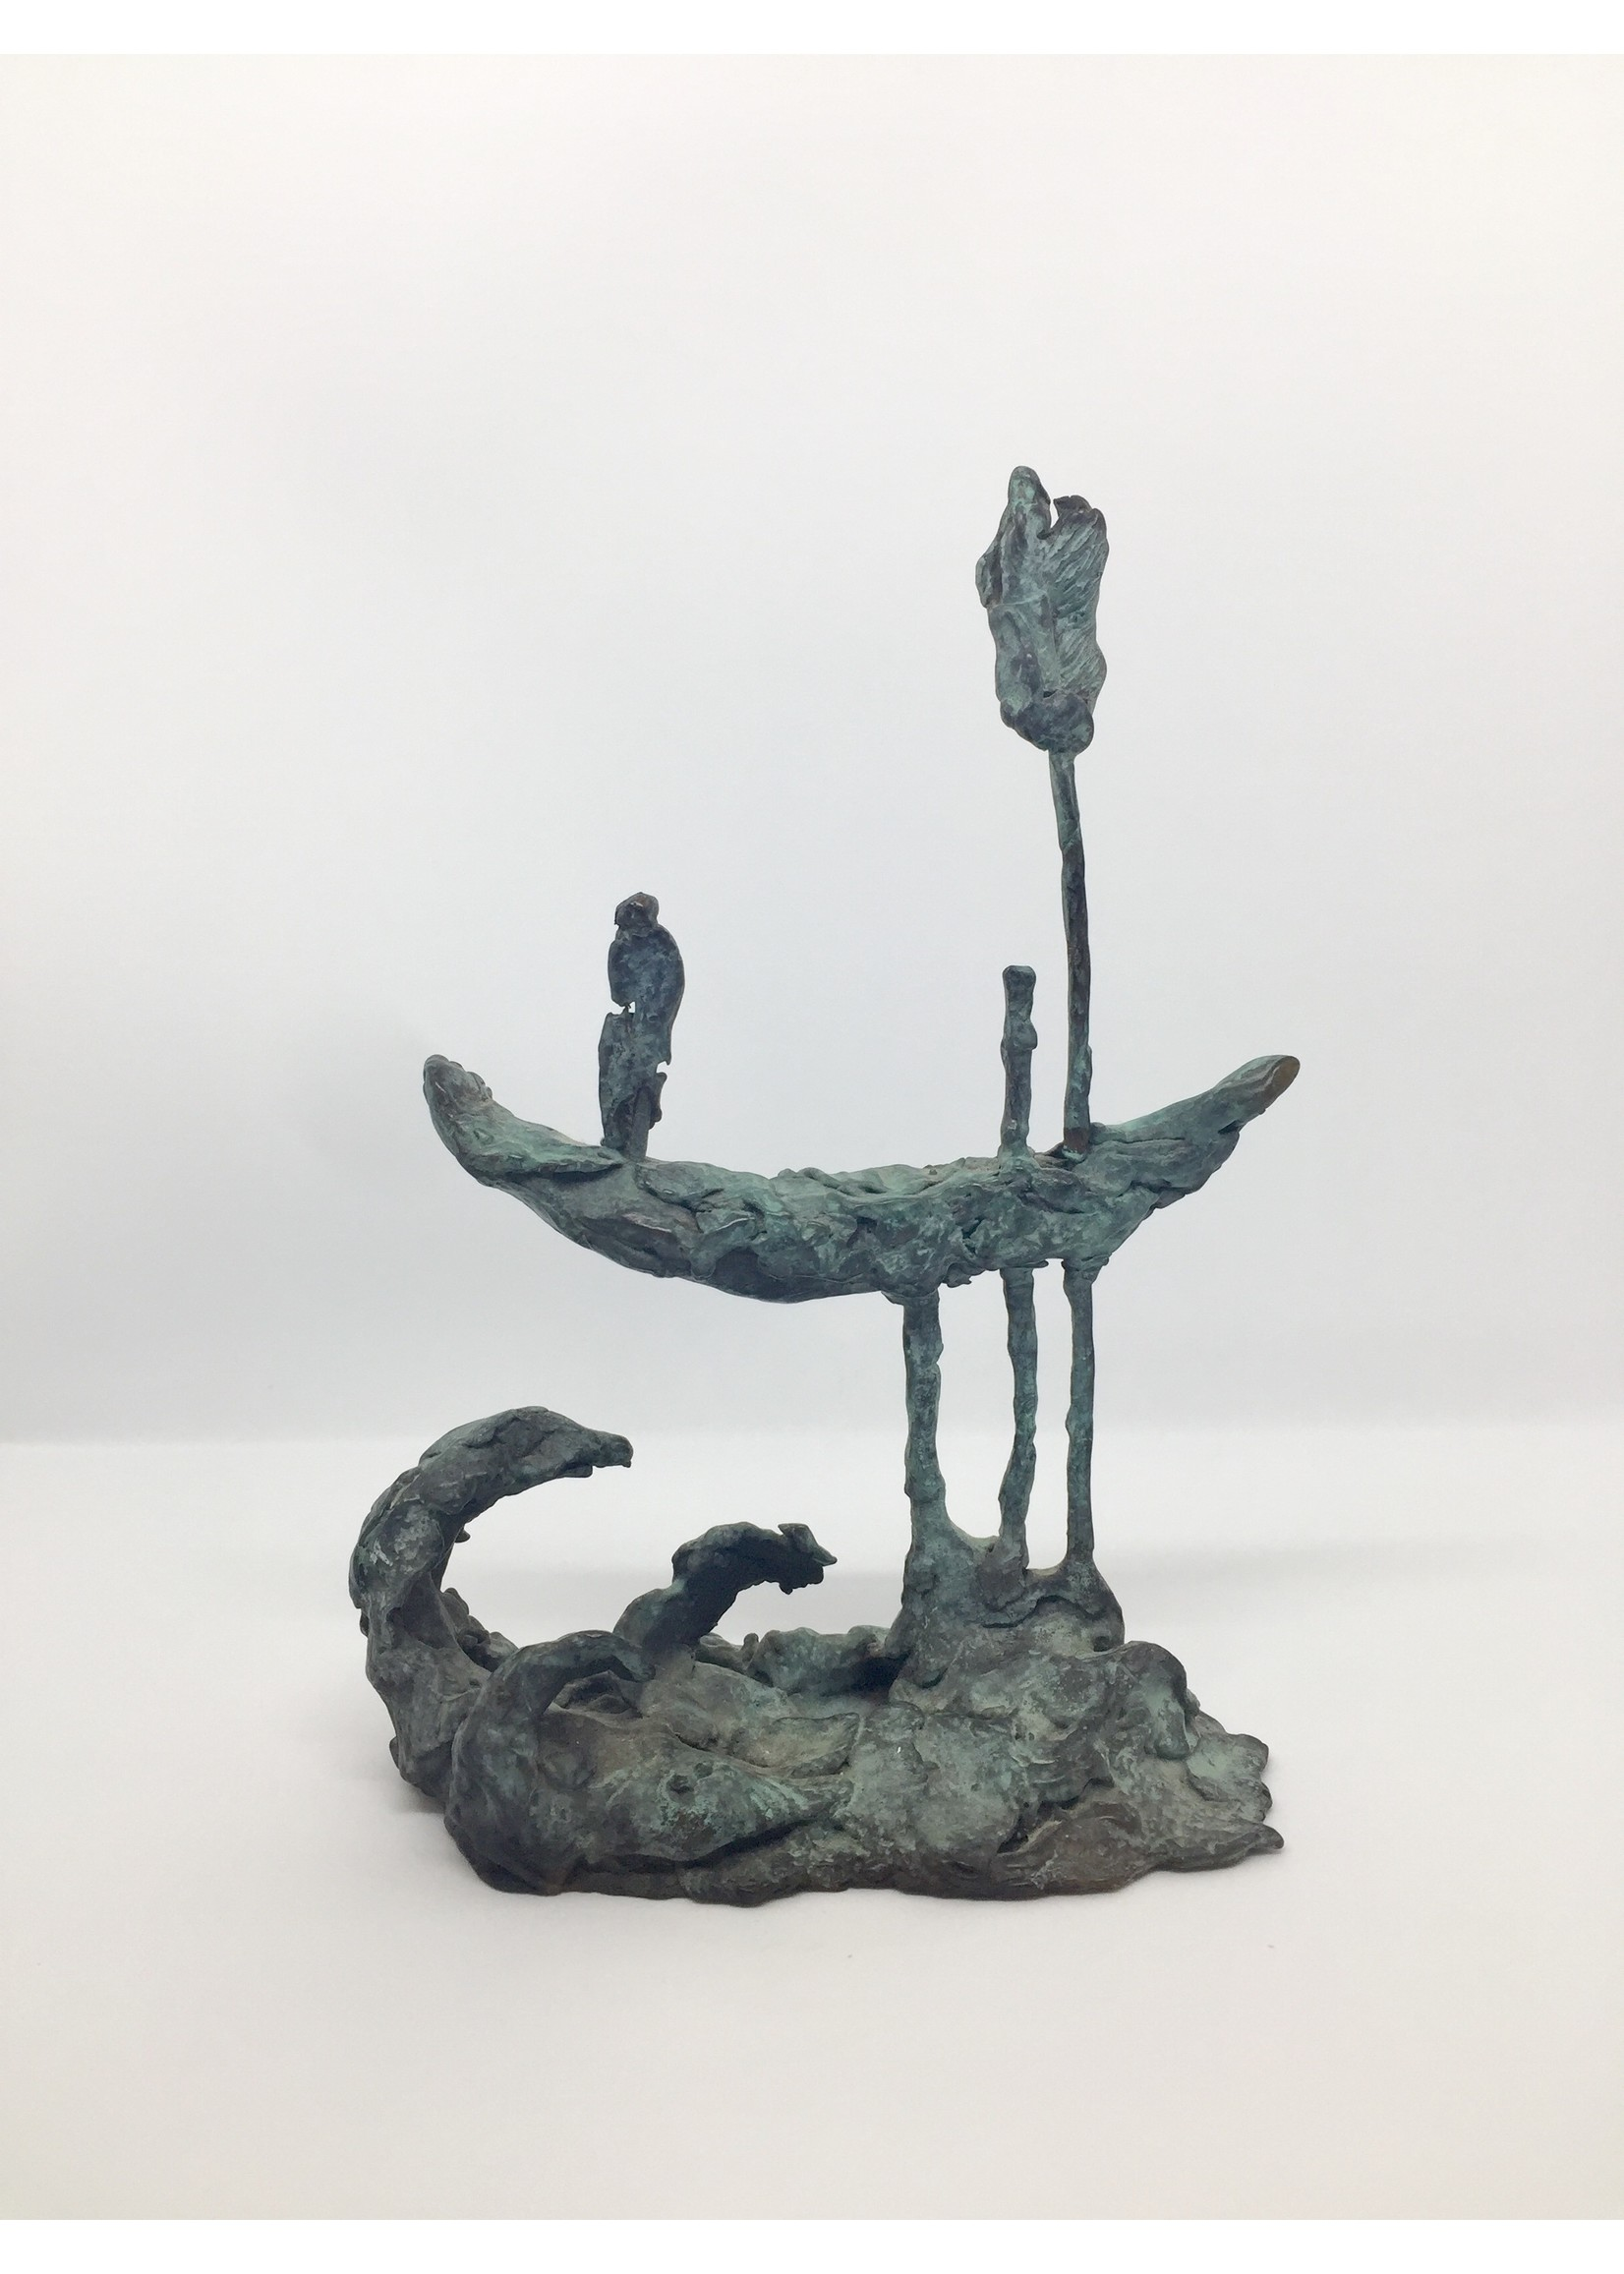 'It is the sea that makes me strong' - Denise Kamp (Bronze)